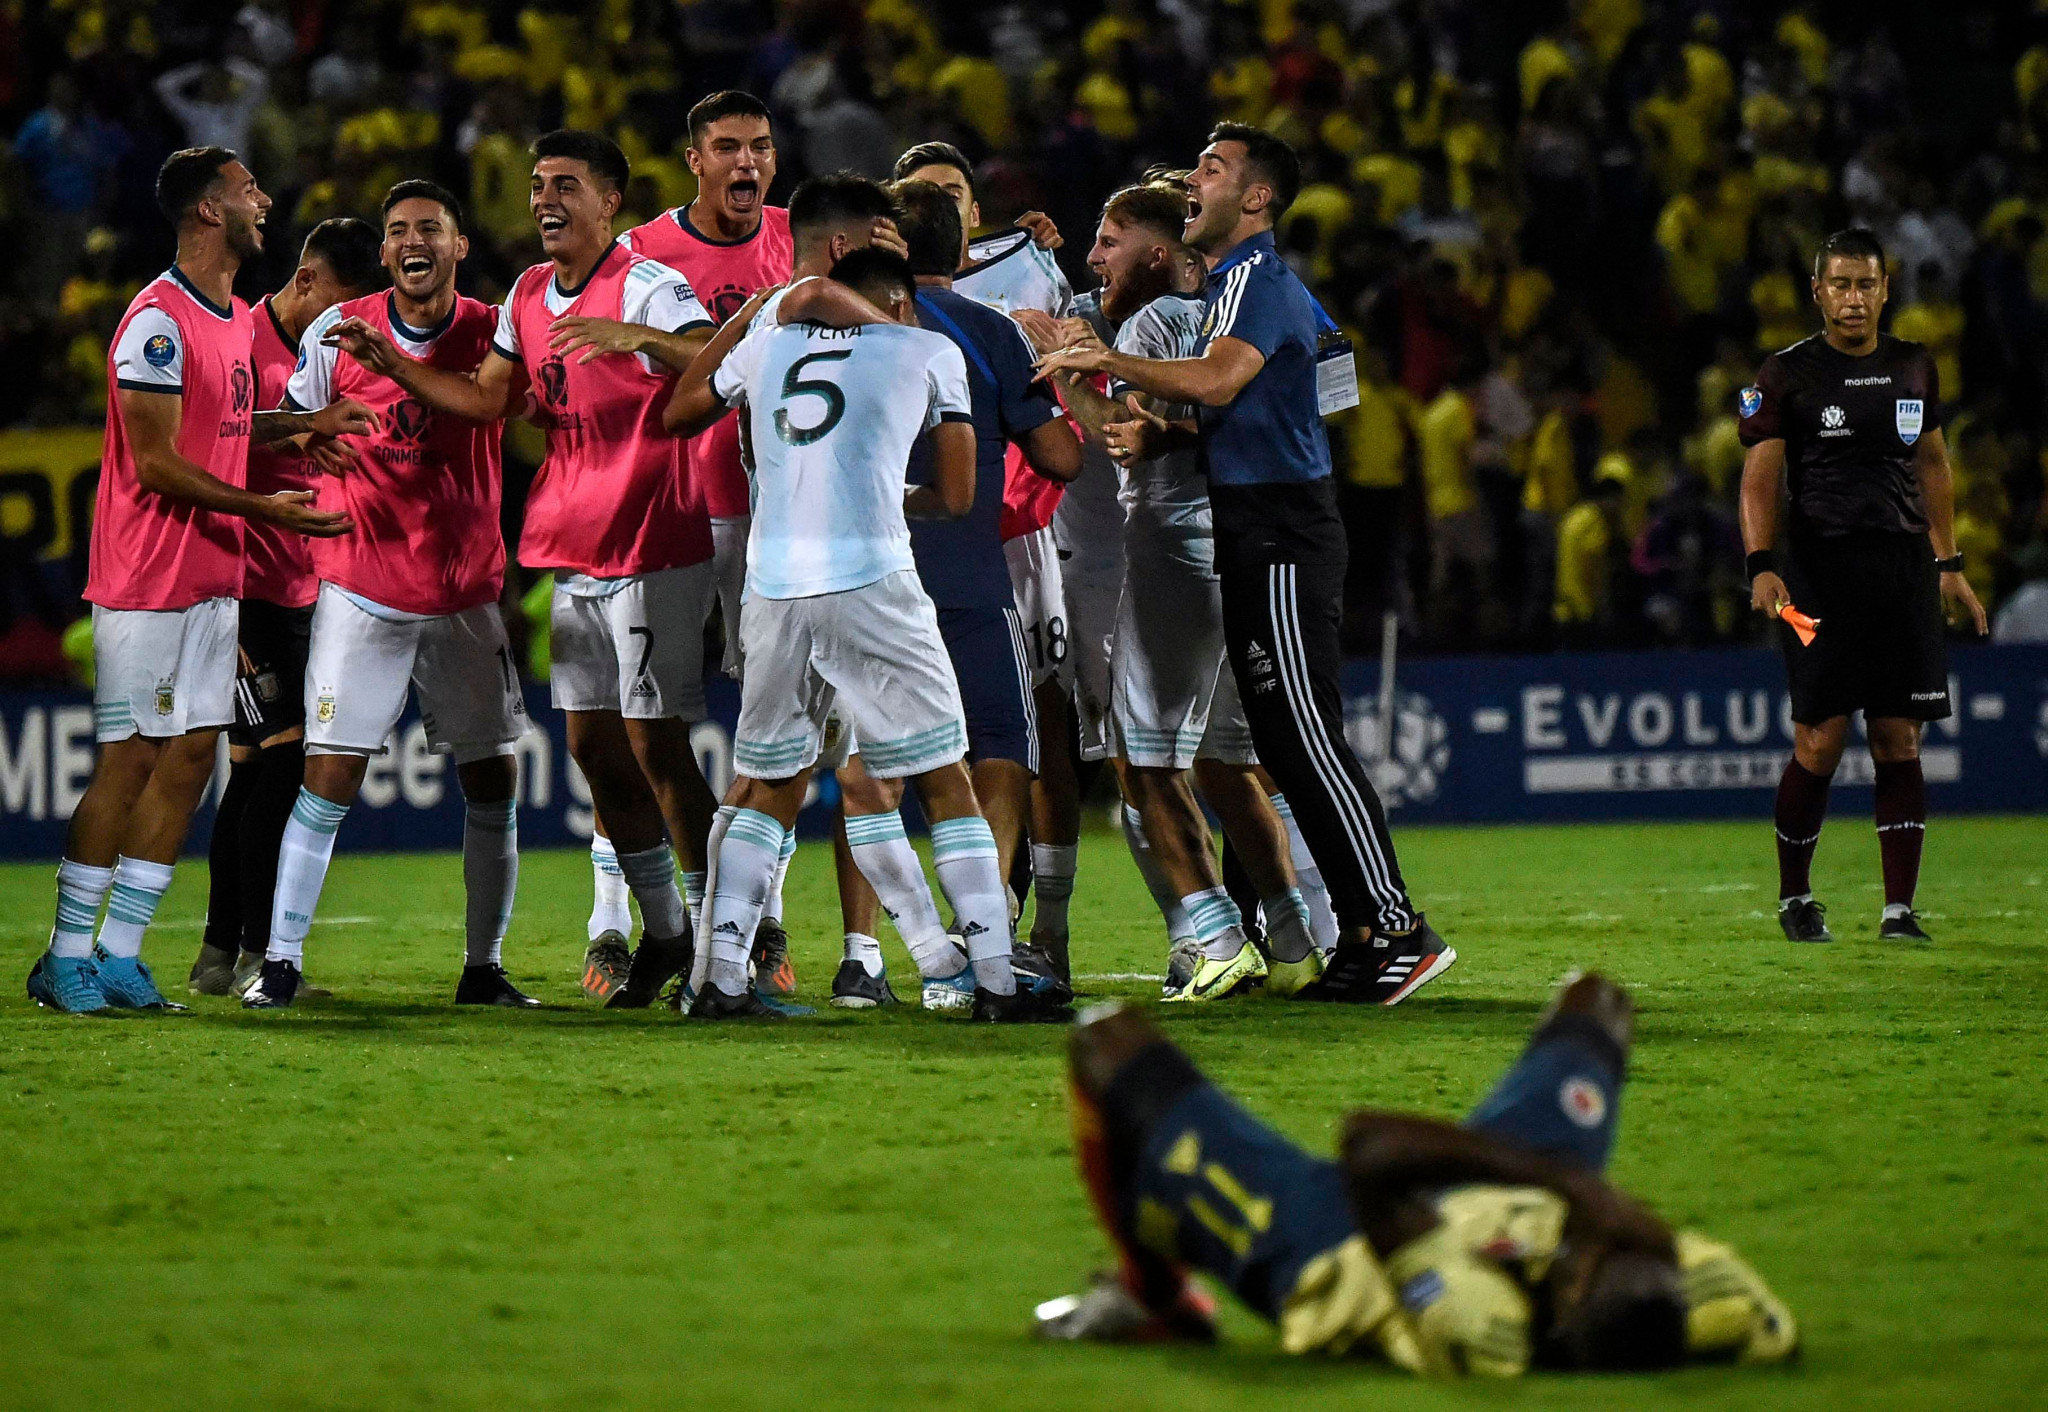 Argentina clinch Tokyo 2020 football qualification as Brazil's place remains in doubt